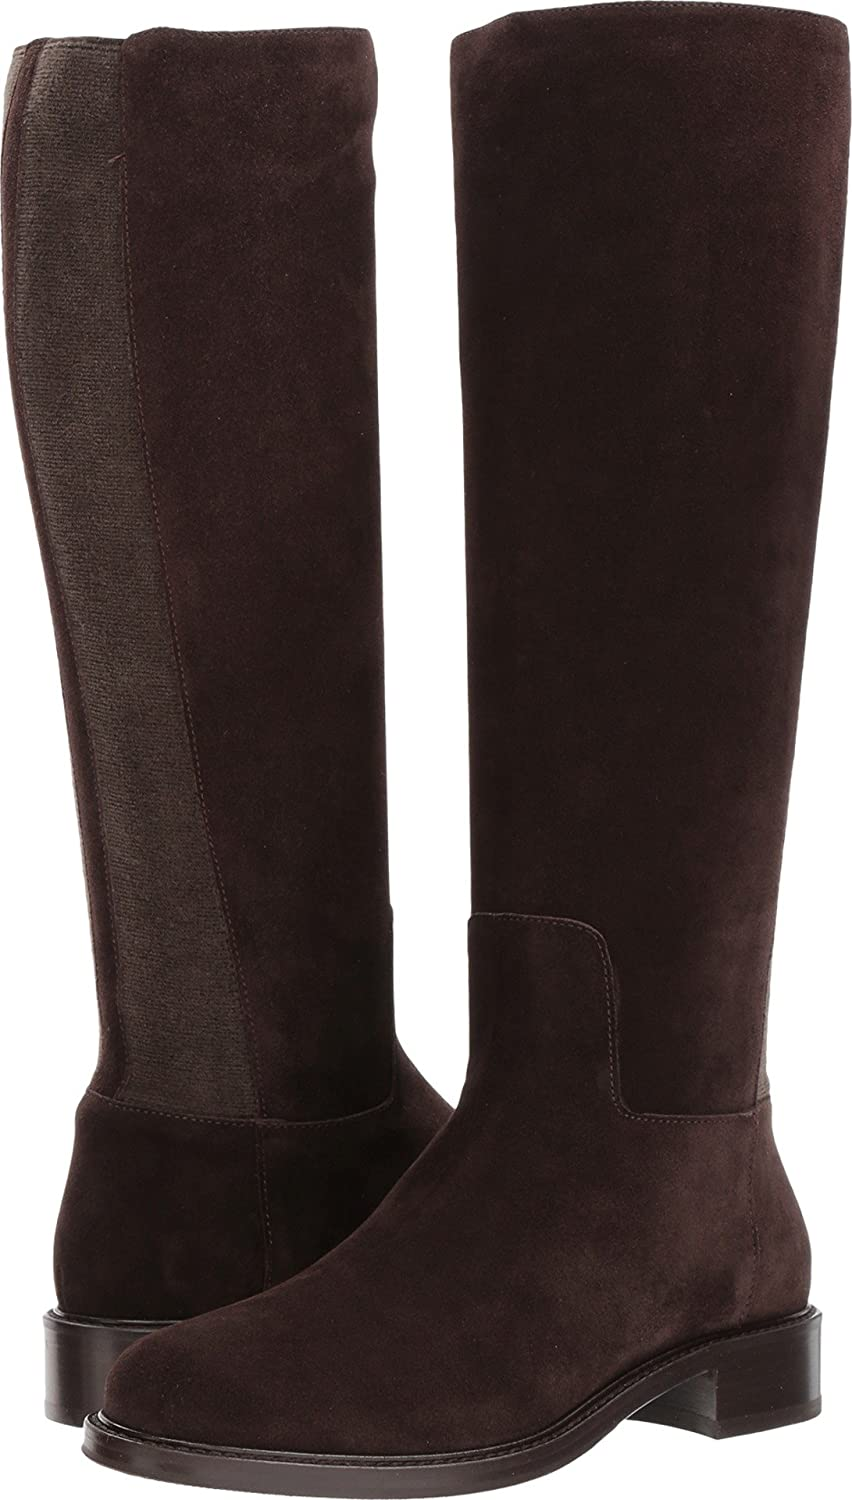 Aquatalia Women's Bryana Calf Knee High Boot B071CH8L9G 7 B(M) US|Espresso Suede